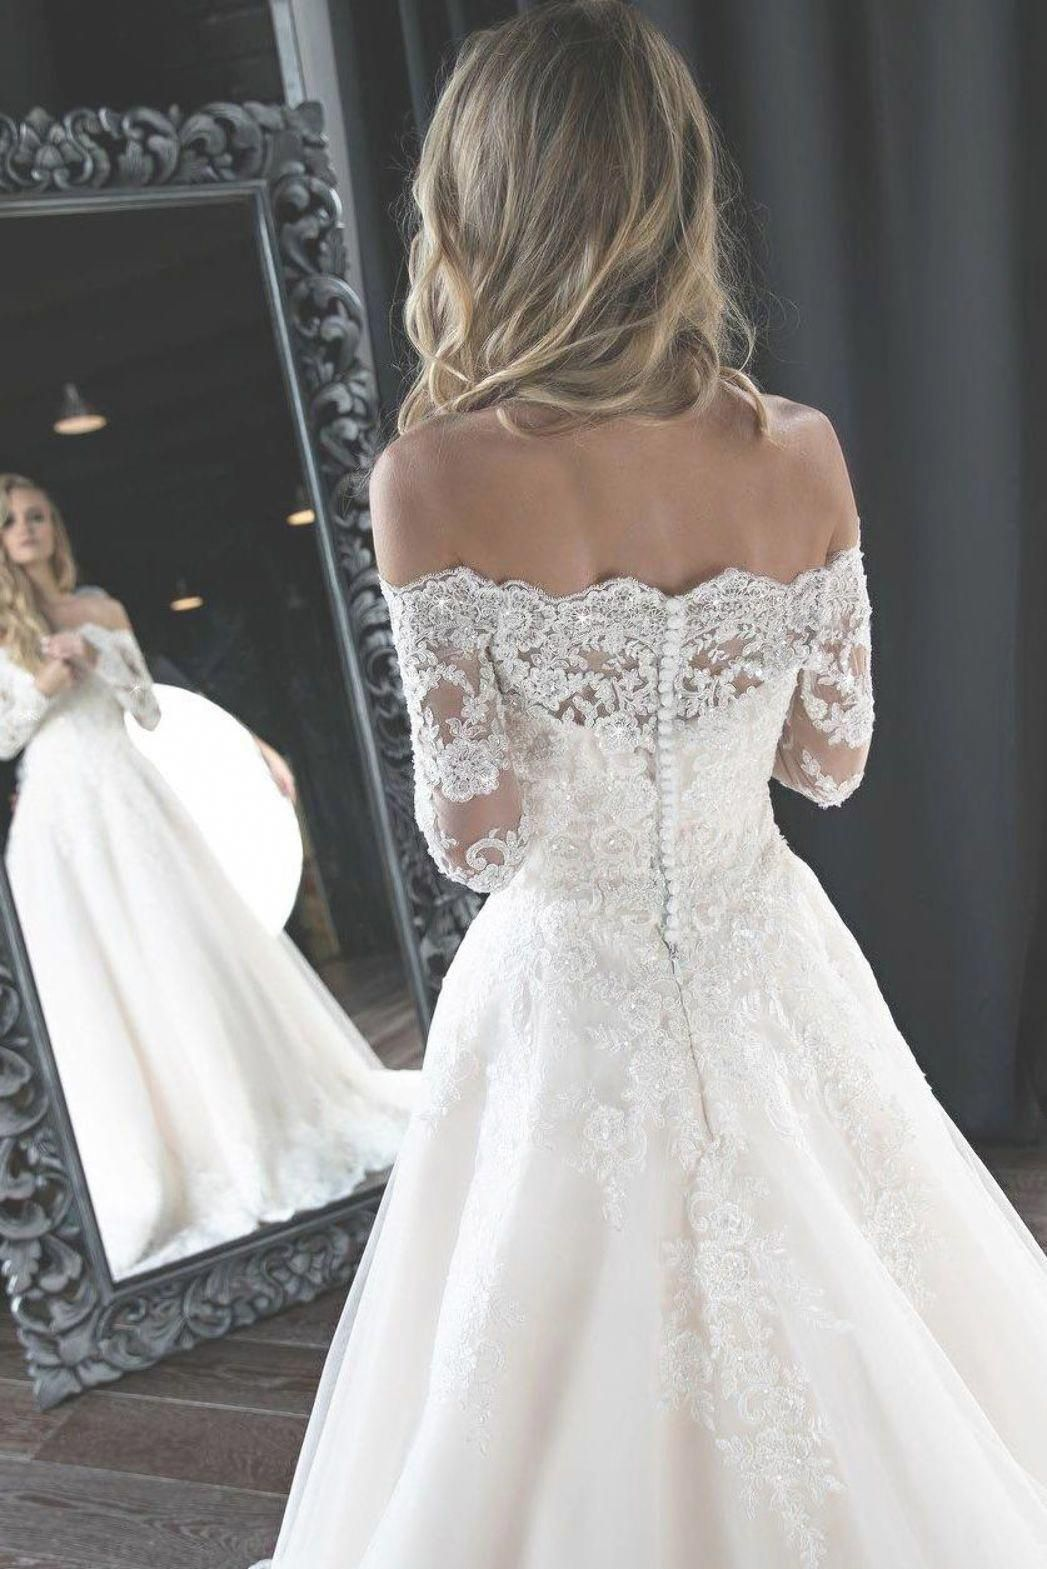 Long Sleeves Off The Shoulder White Lace Wedding Dress Weddingdresseswithslee Lace Wedding Dress With Sleeves Long Sleeve Wedding Dress Lace Lace Wedding Dres [ 1569 x 1047 Pixel ]